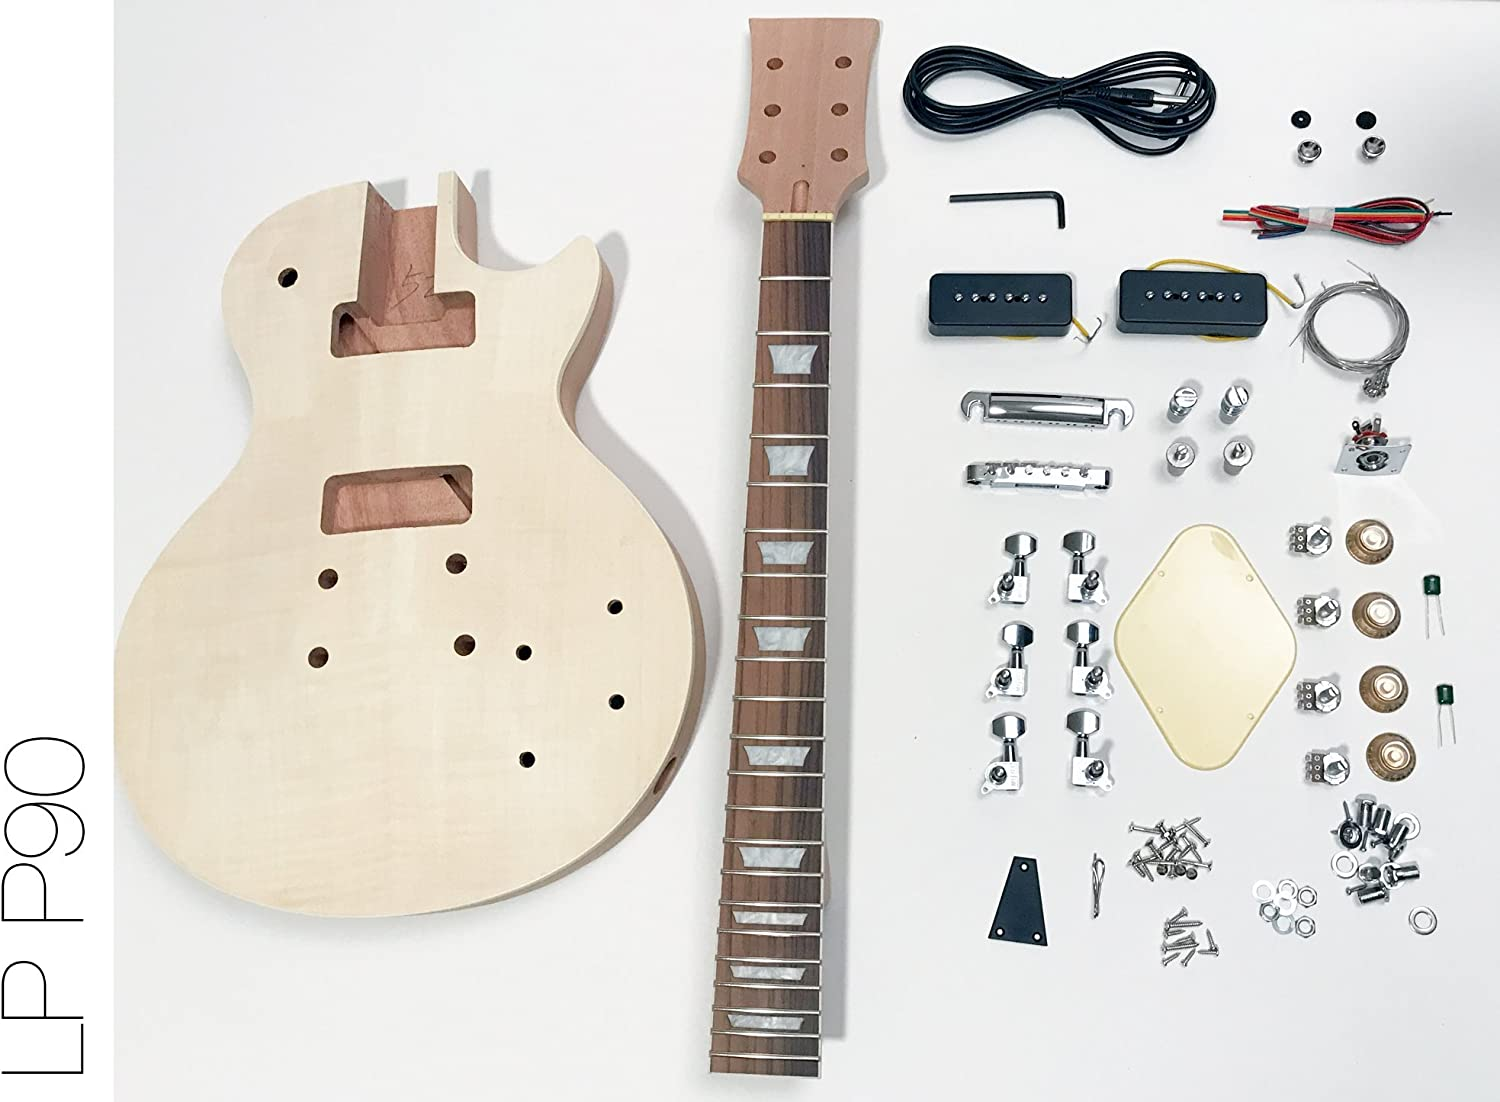 DIY Kit de guitarra eléctrica LP caoba P90 construir su propio Kit ...